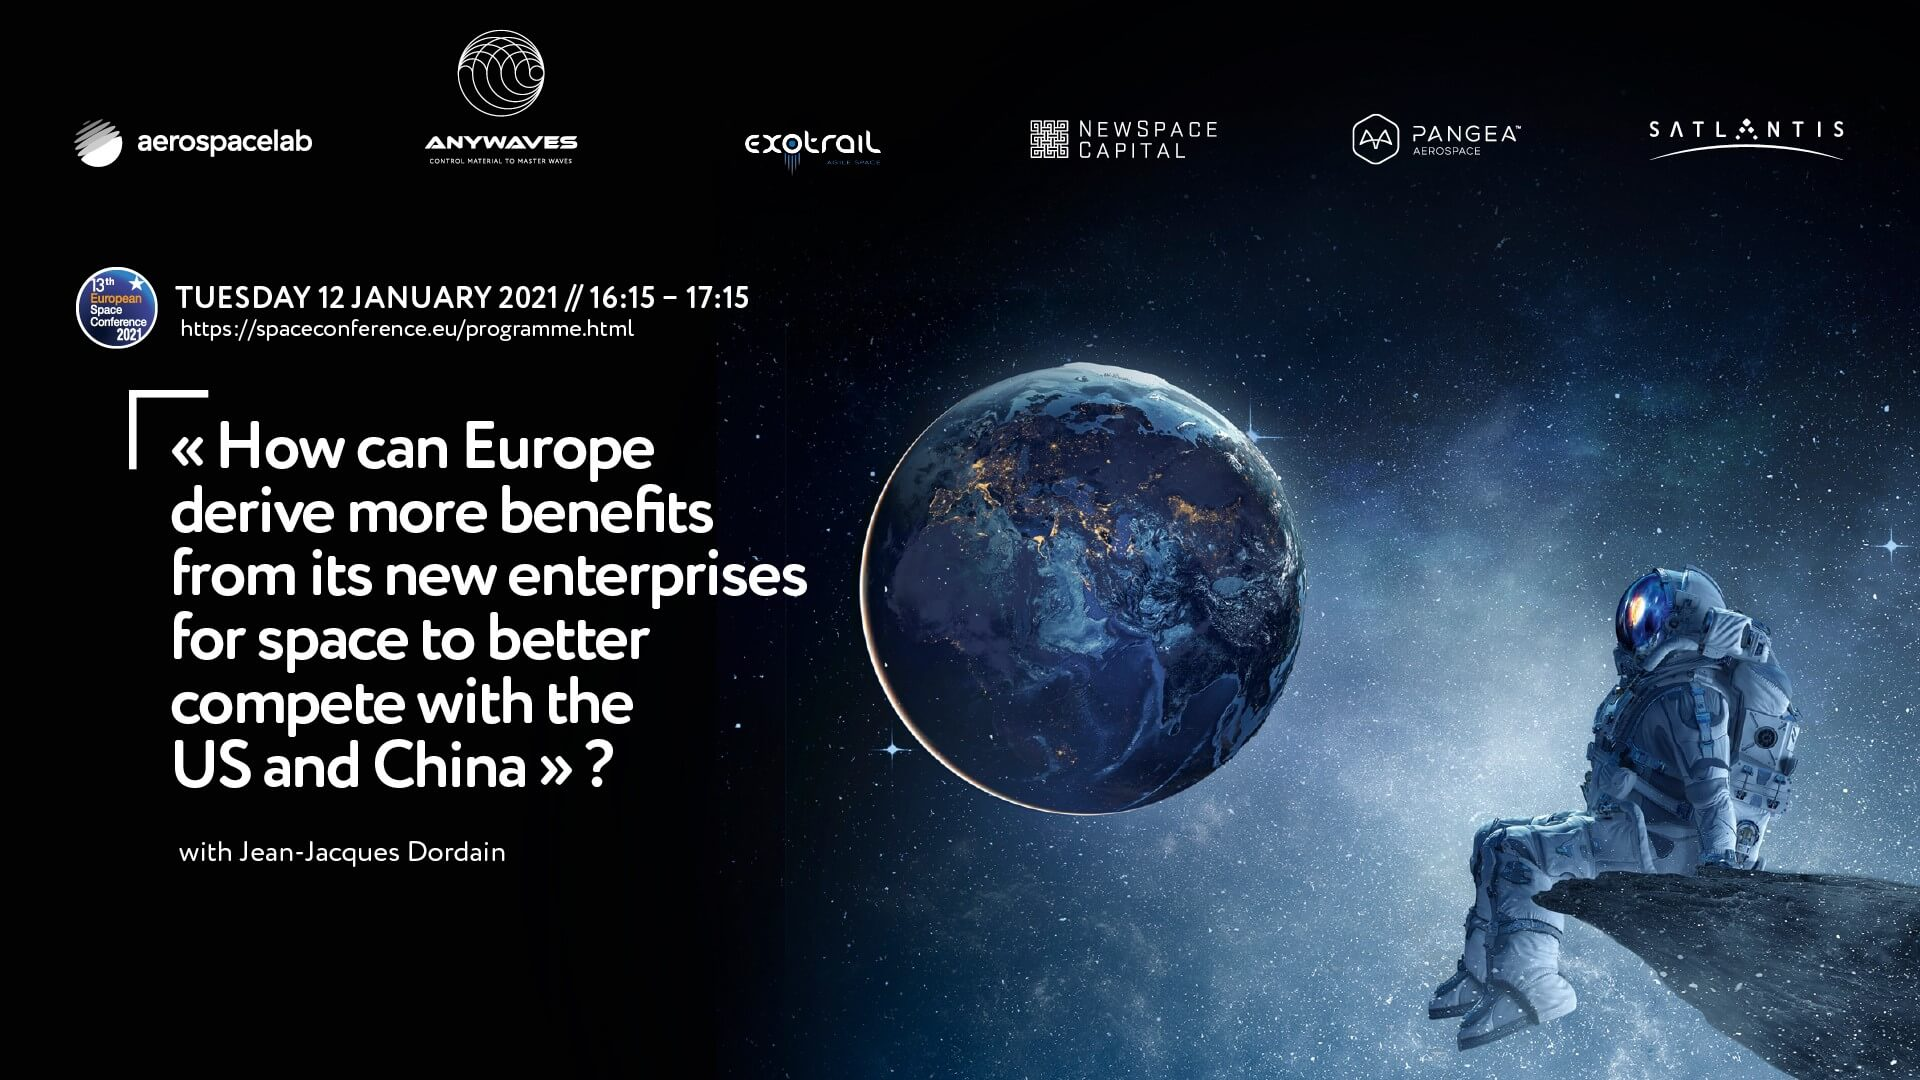 ANYWAVES part of the 13th European Space Conference